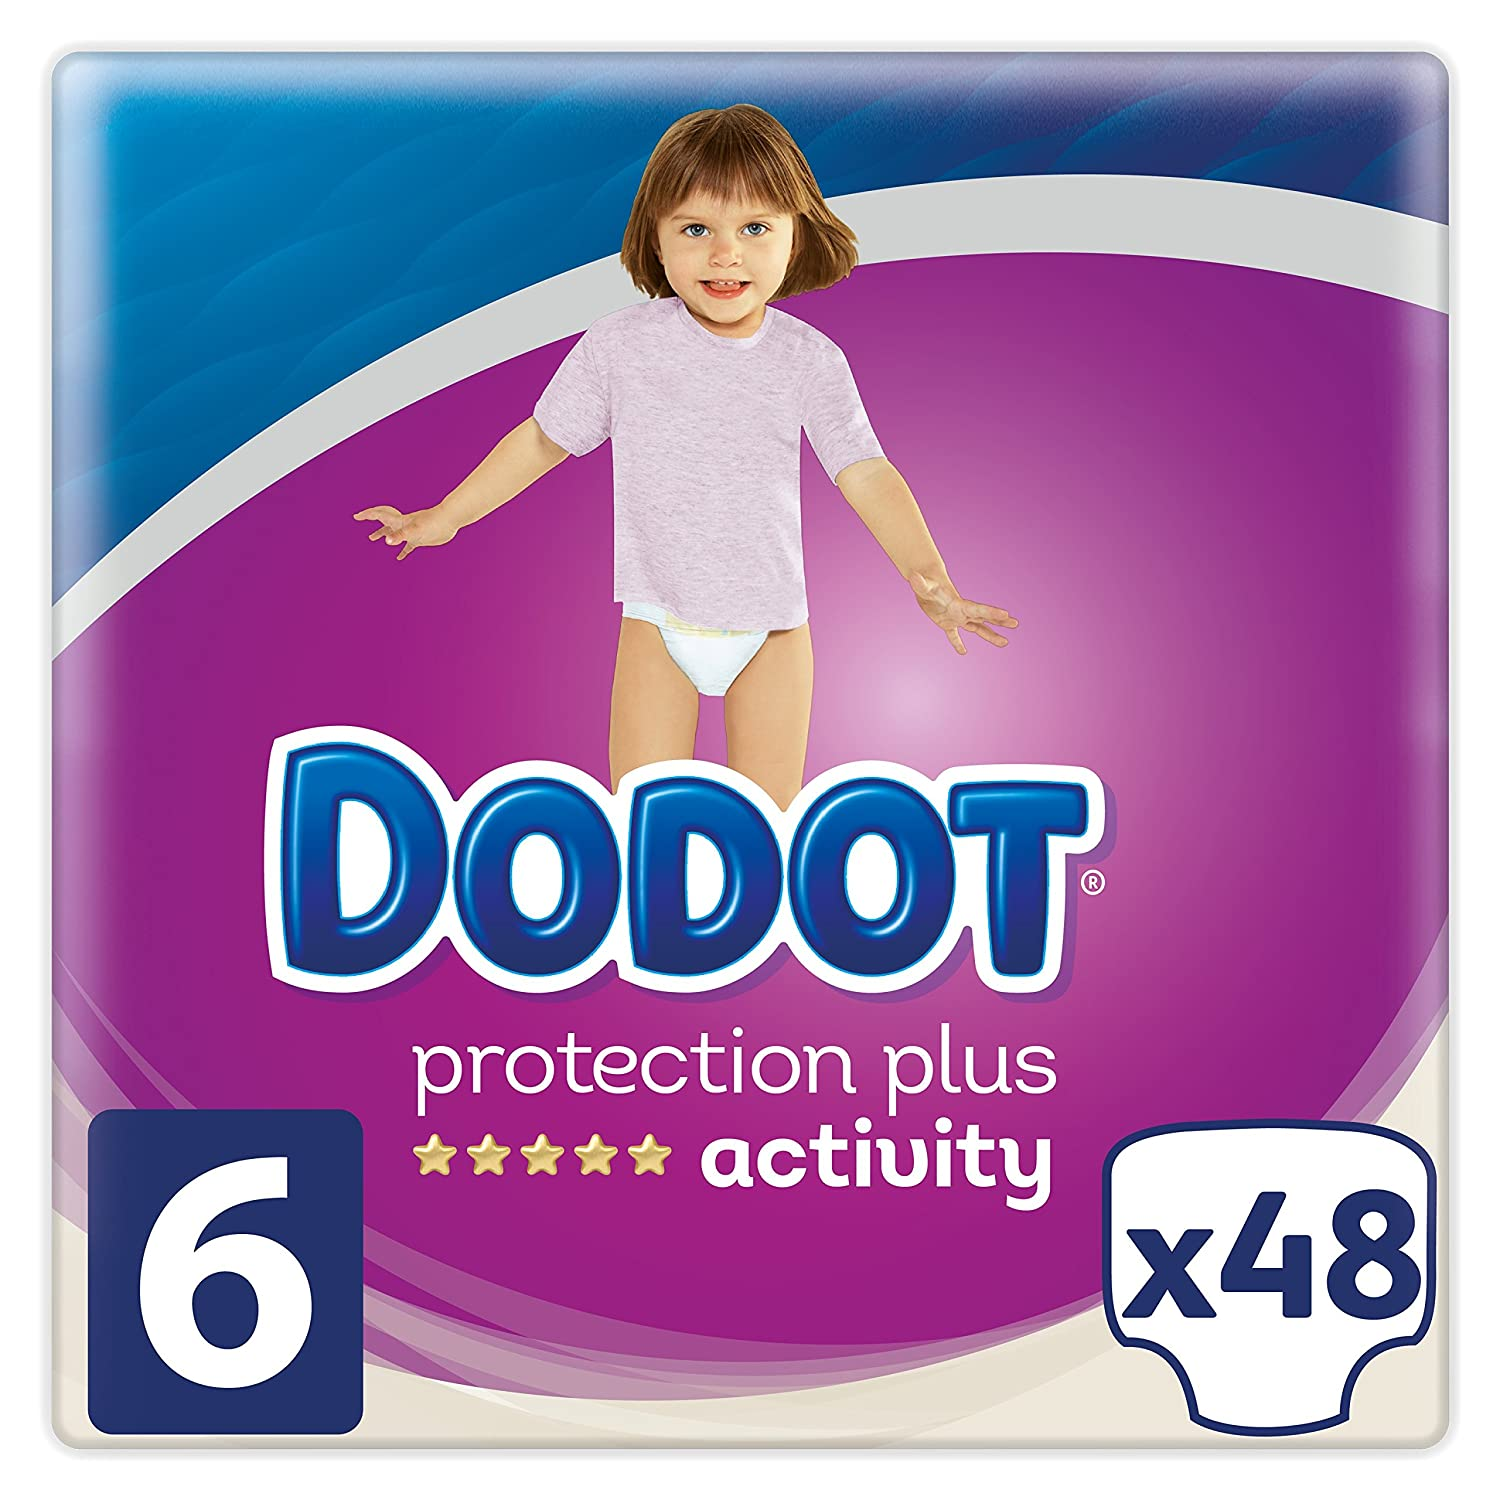 Dodot Pañales Protection Plus Activity, Talla 6, para Bebes de 13+ kg - 48 Pañales: Amazon.es: Belleza